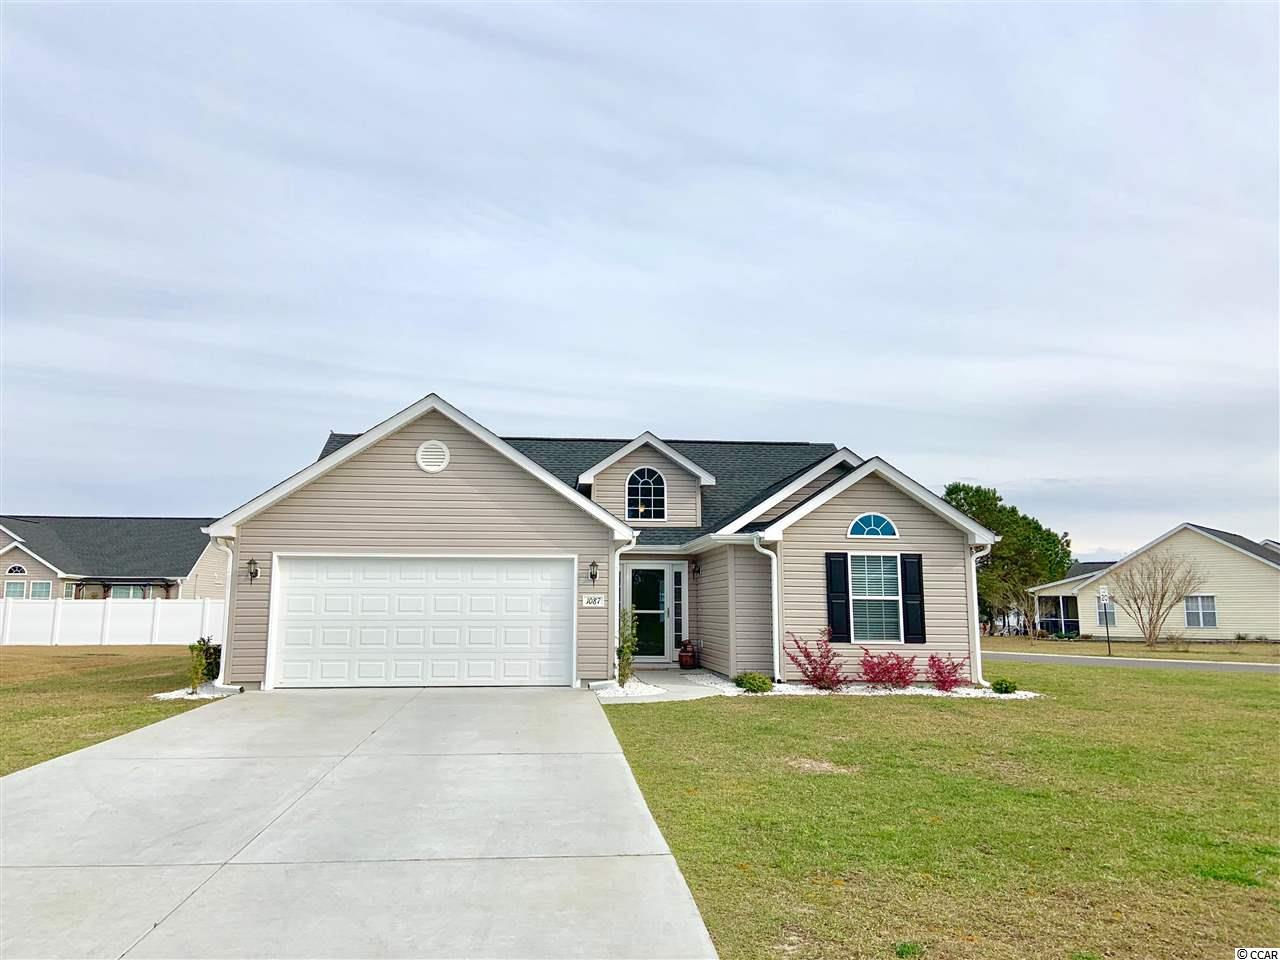 You MUST SEE this lovely 3 bedroom, 2 full bathroom, 2 car garage home located in the community of Mallard Landing Village! Conveniently located and sits on a HUGE-CORNER LOT! Built in 2017, this like-new home has much to offer! Upon entering the foyer you are greeted by an open & bright great room with vaulted ceilings and faux wood flooring throughout the entire home! Enjoy your open kitchen and breakfast nook accented by a beautiful bay window. The split floor plan allows for privacy and spacious bedrooms. In the master bedroom you will find tray ceilings & an ample amount of space in the walk-in closet. Relax on the outdoor patio, a perfect space to grill out and enjoy! This home is only a short golf cart ride to the beach and close proximity to Market Common, The Murrells Inlet Marsh Walk, Surfside Pier, Shopping, Restaurants and Entertainment! Don't miss out on owning this charming home at the beach!